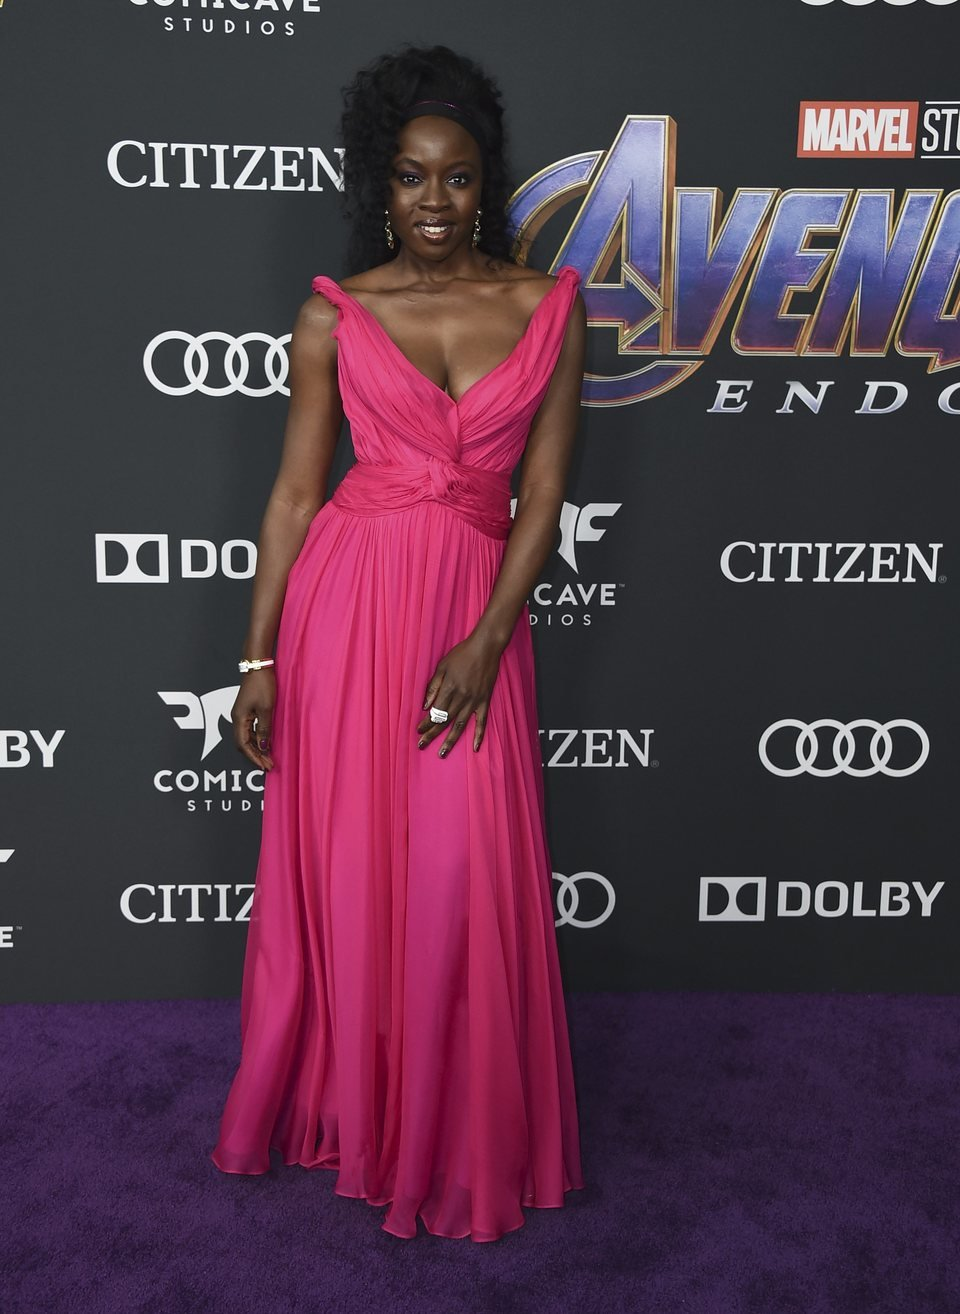 Danai Gurira on the red carpet of 'Avengers: Endgame'